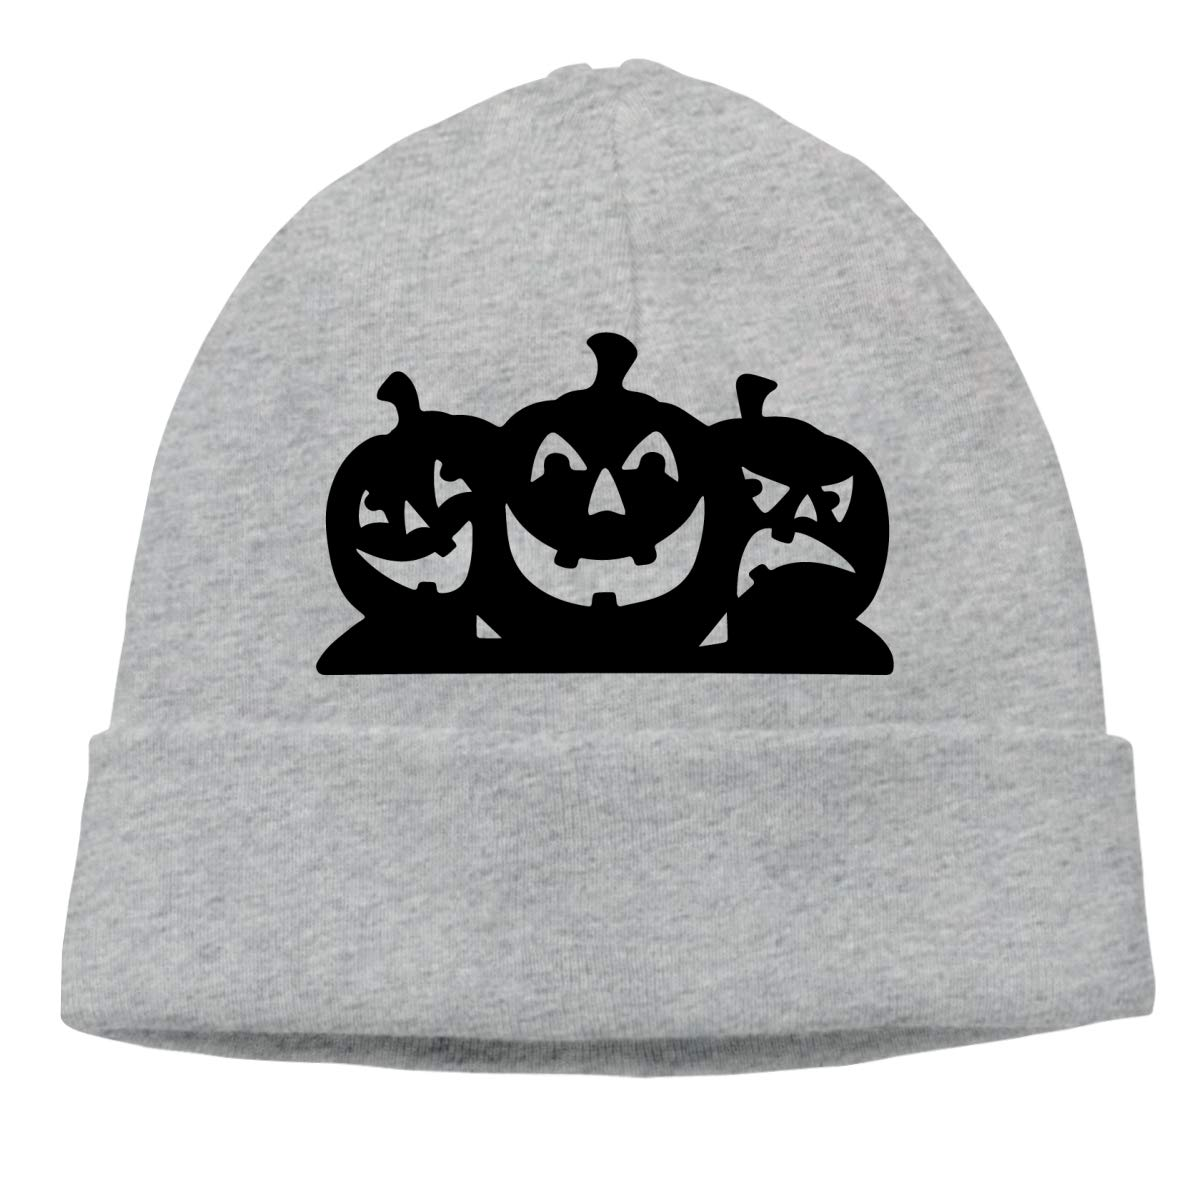 Mens and Womens Skullies Beanies Pumpkins Silhouette Classic Skull Cap Sports /& Outdoors Knit Hat Gray